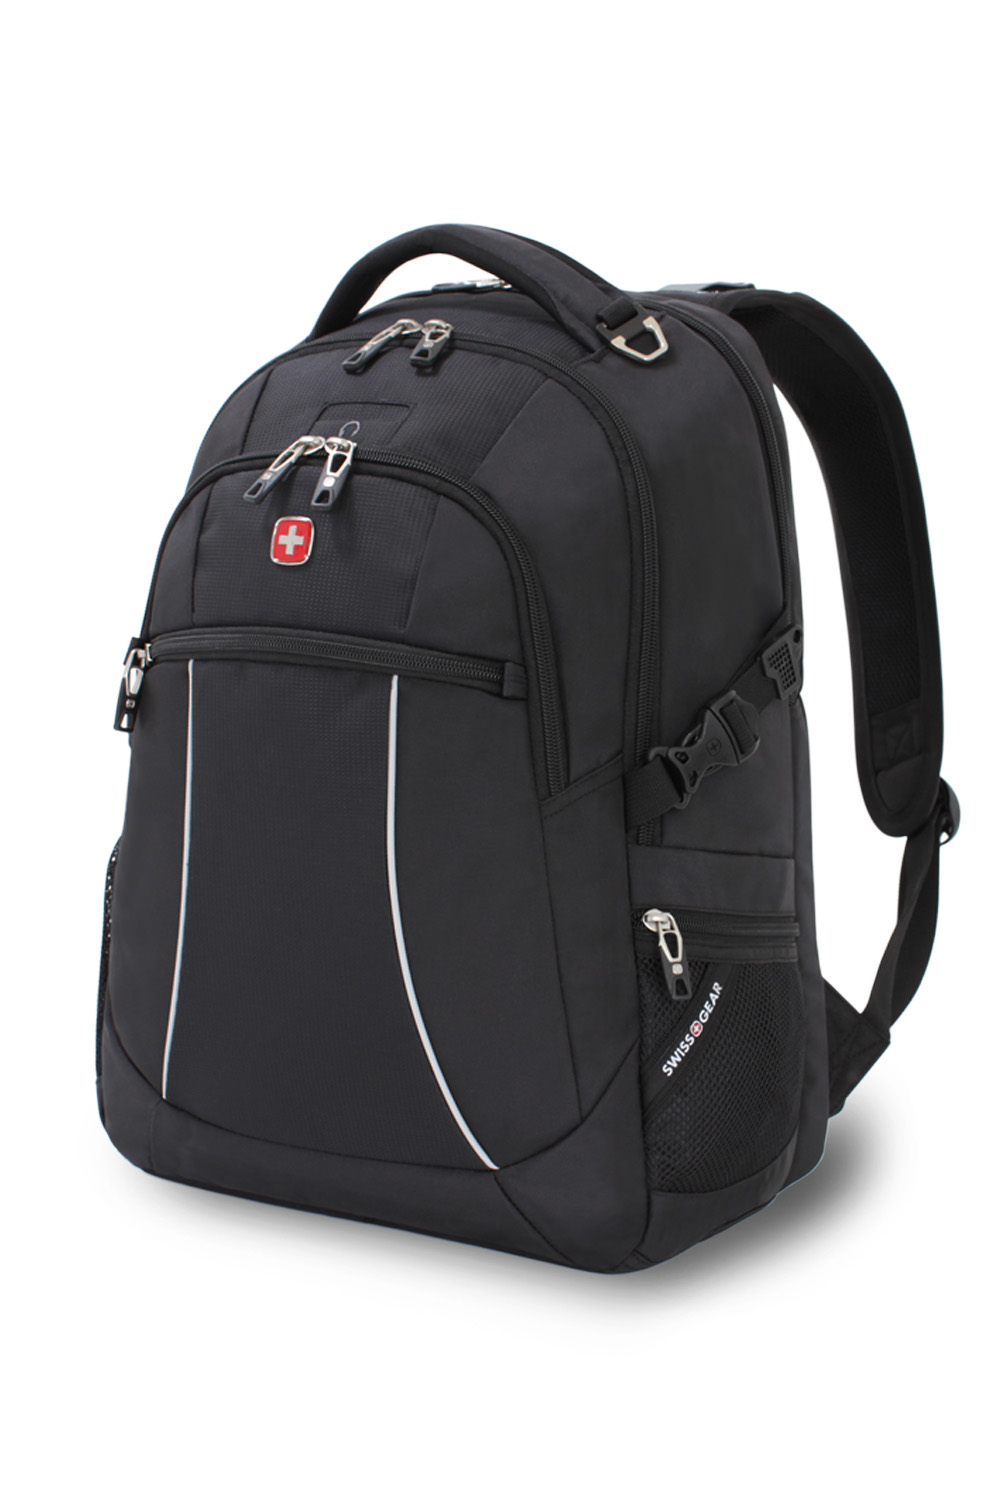 SWISSGEAR 6688 Laptop Backpack - Black